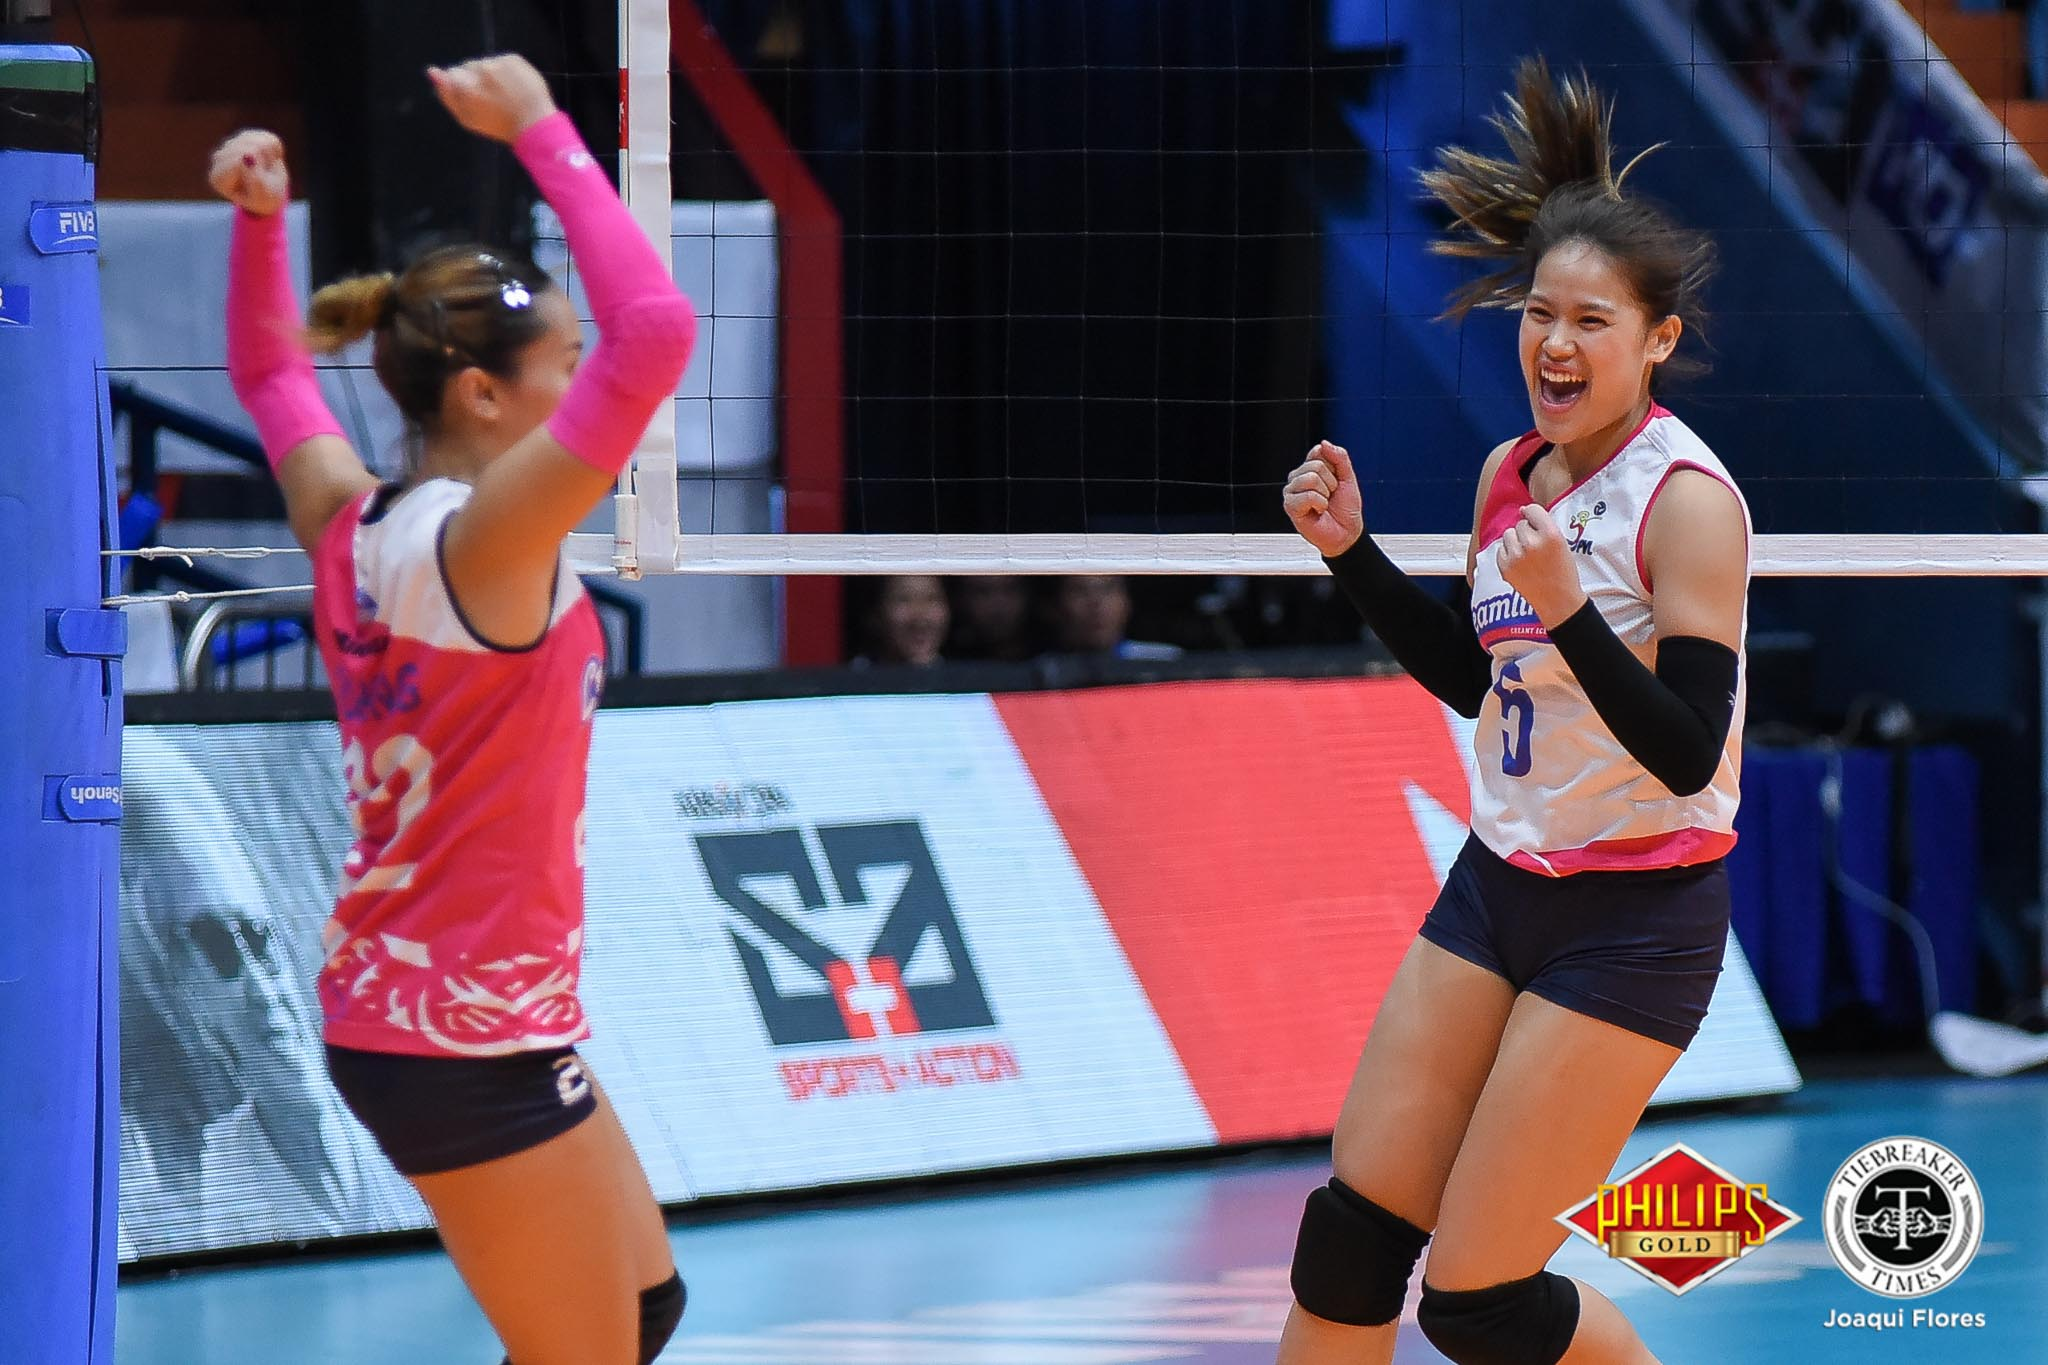 Tiebreaker Times Arielle Love, Pocari Sweat-Air Force play inspired volleyball News PVL Volleyball  Pocari Sweat-Air Force Lady Warriors Jasper Jimenez Arielle Love 2018 PVL Women's Reinforced Conference 2018 PVL Season